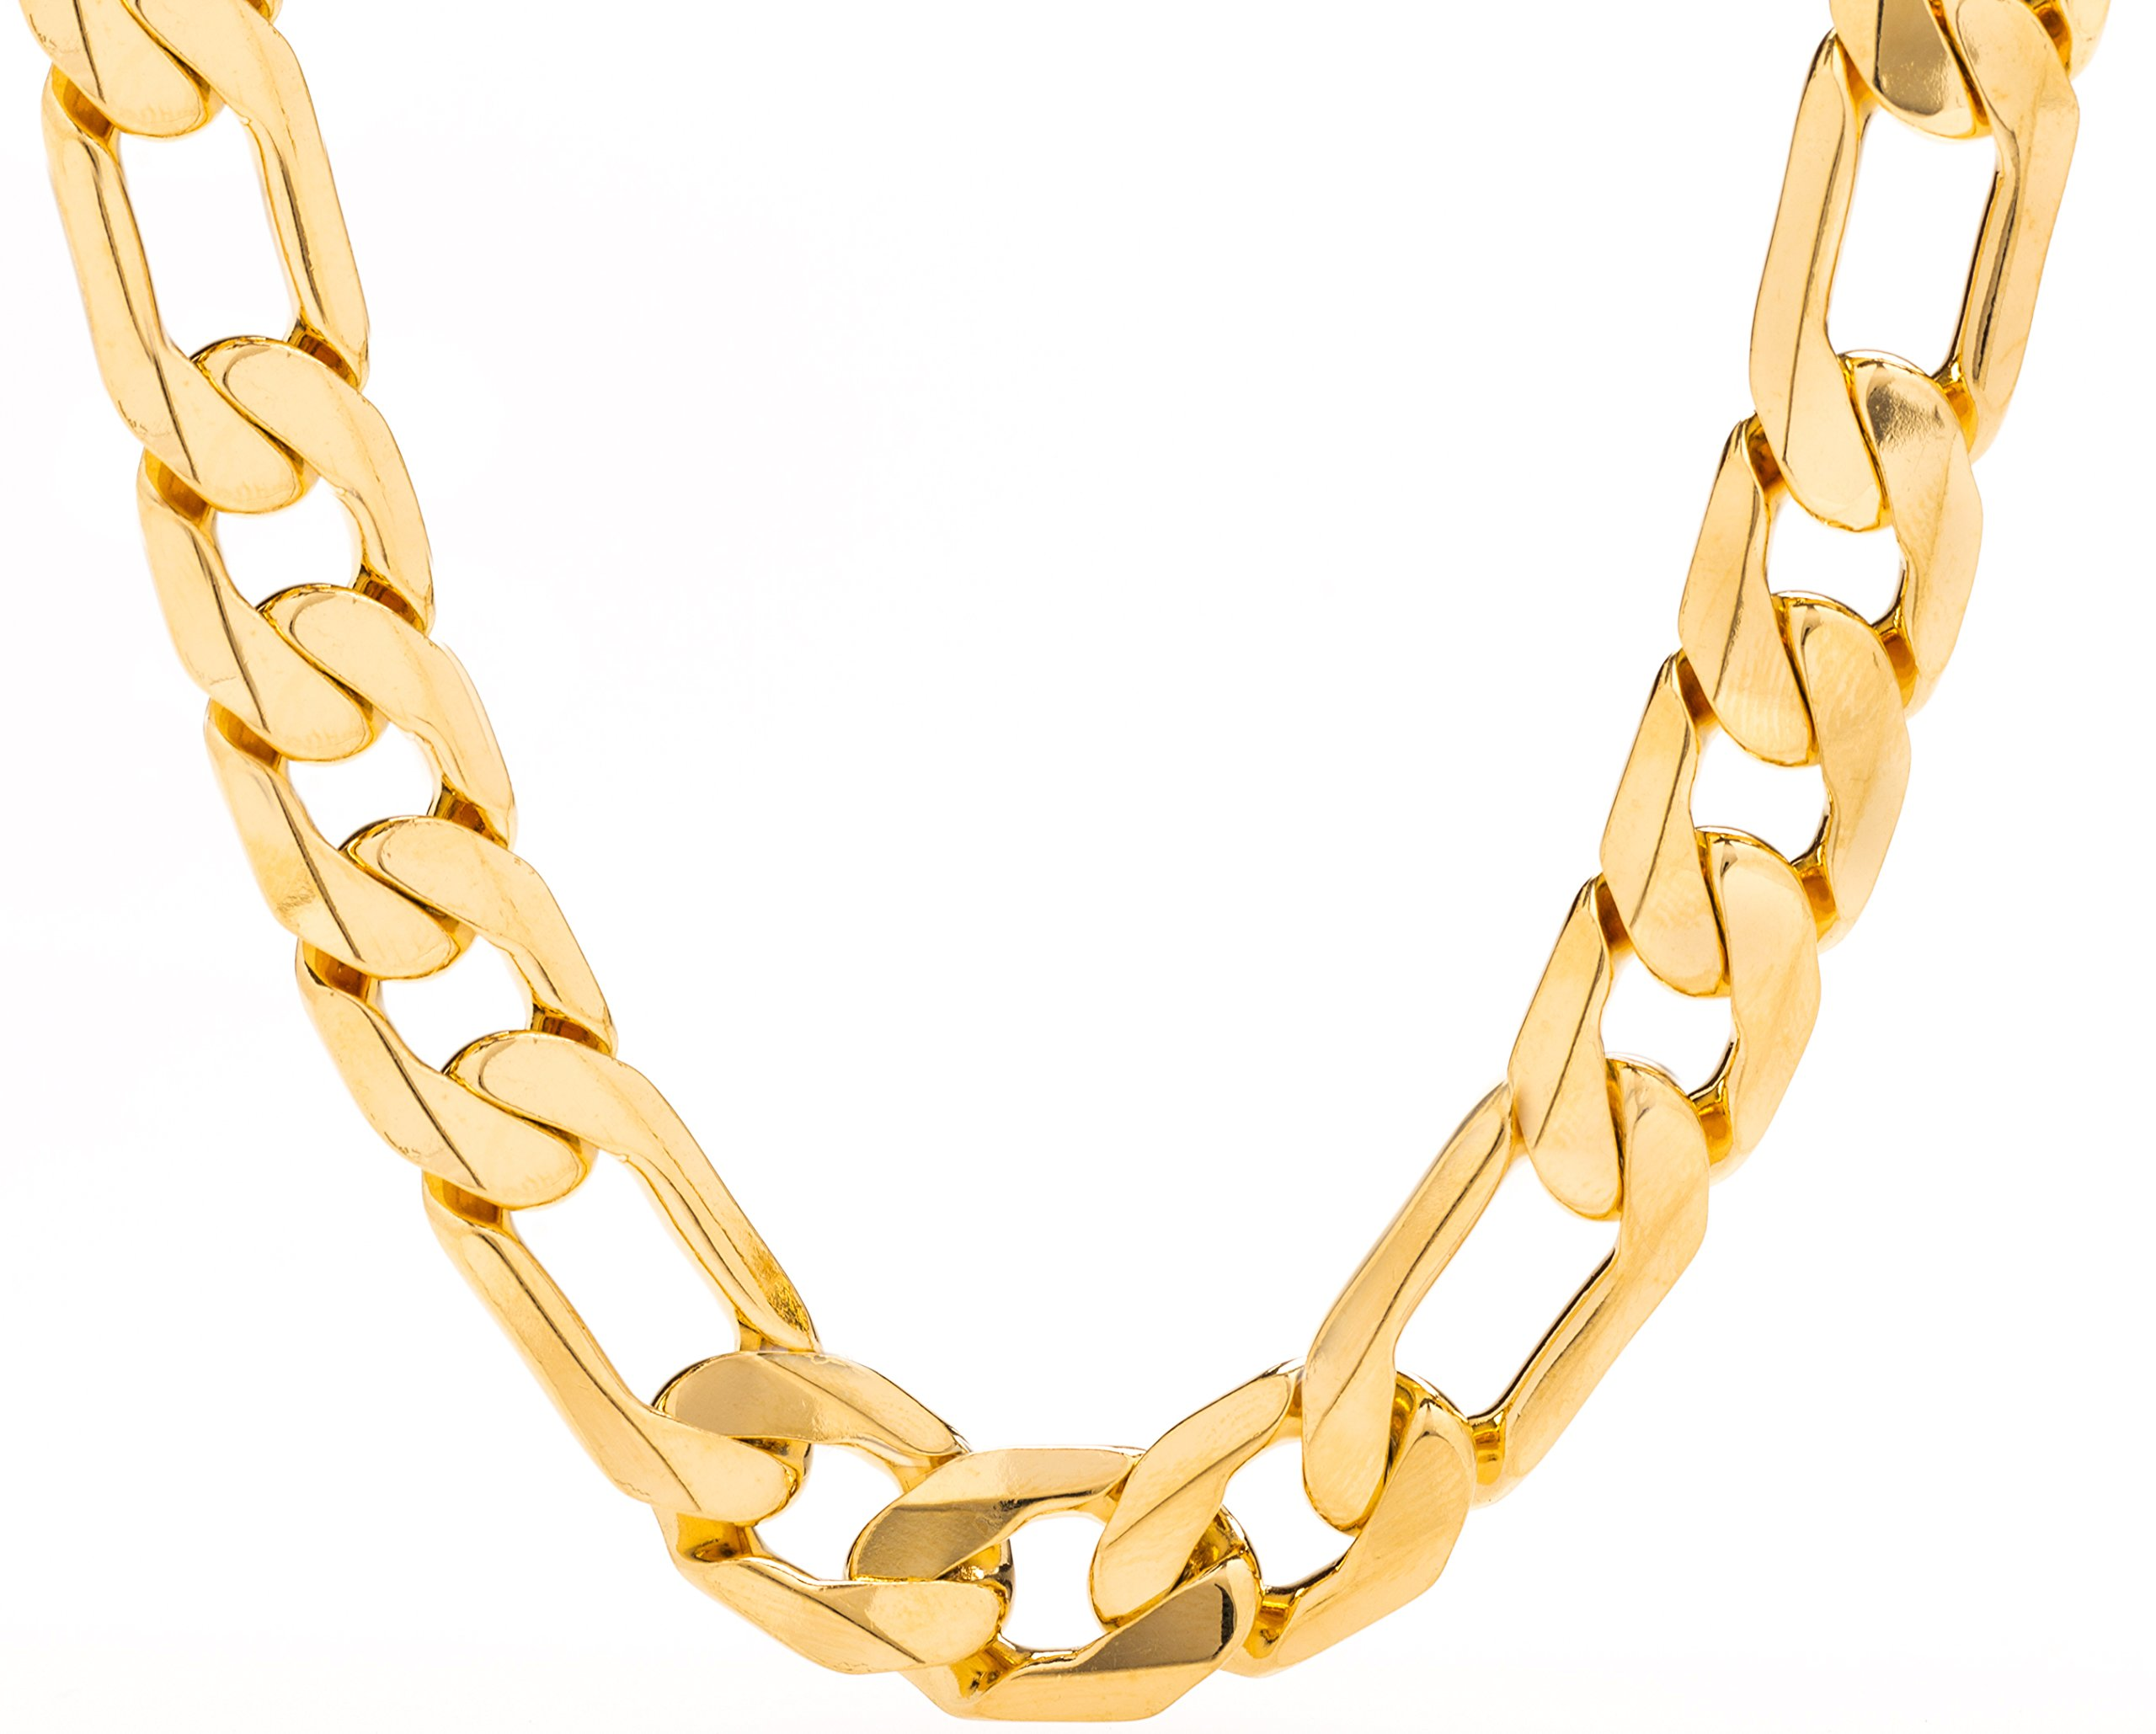 Lifetime Jewelry Figaro Chain 11MM, 24K Gold Over Semi-Precious Metals, Premium Fashion Jewelry, Hip Hop, Comes in a Box or Pouch for Gifts, Guaranteed for Life, Long, 30 Inches by Lifetime Jewelry